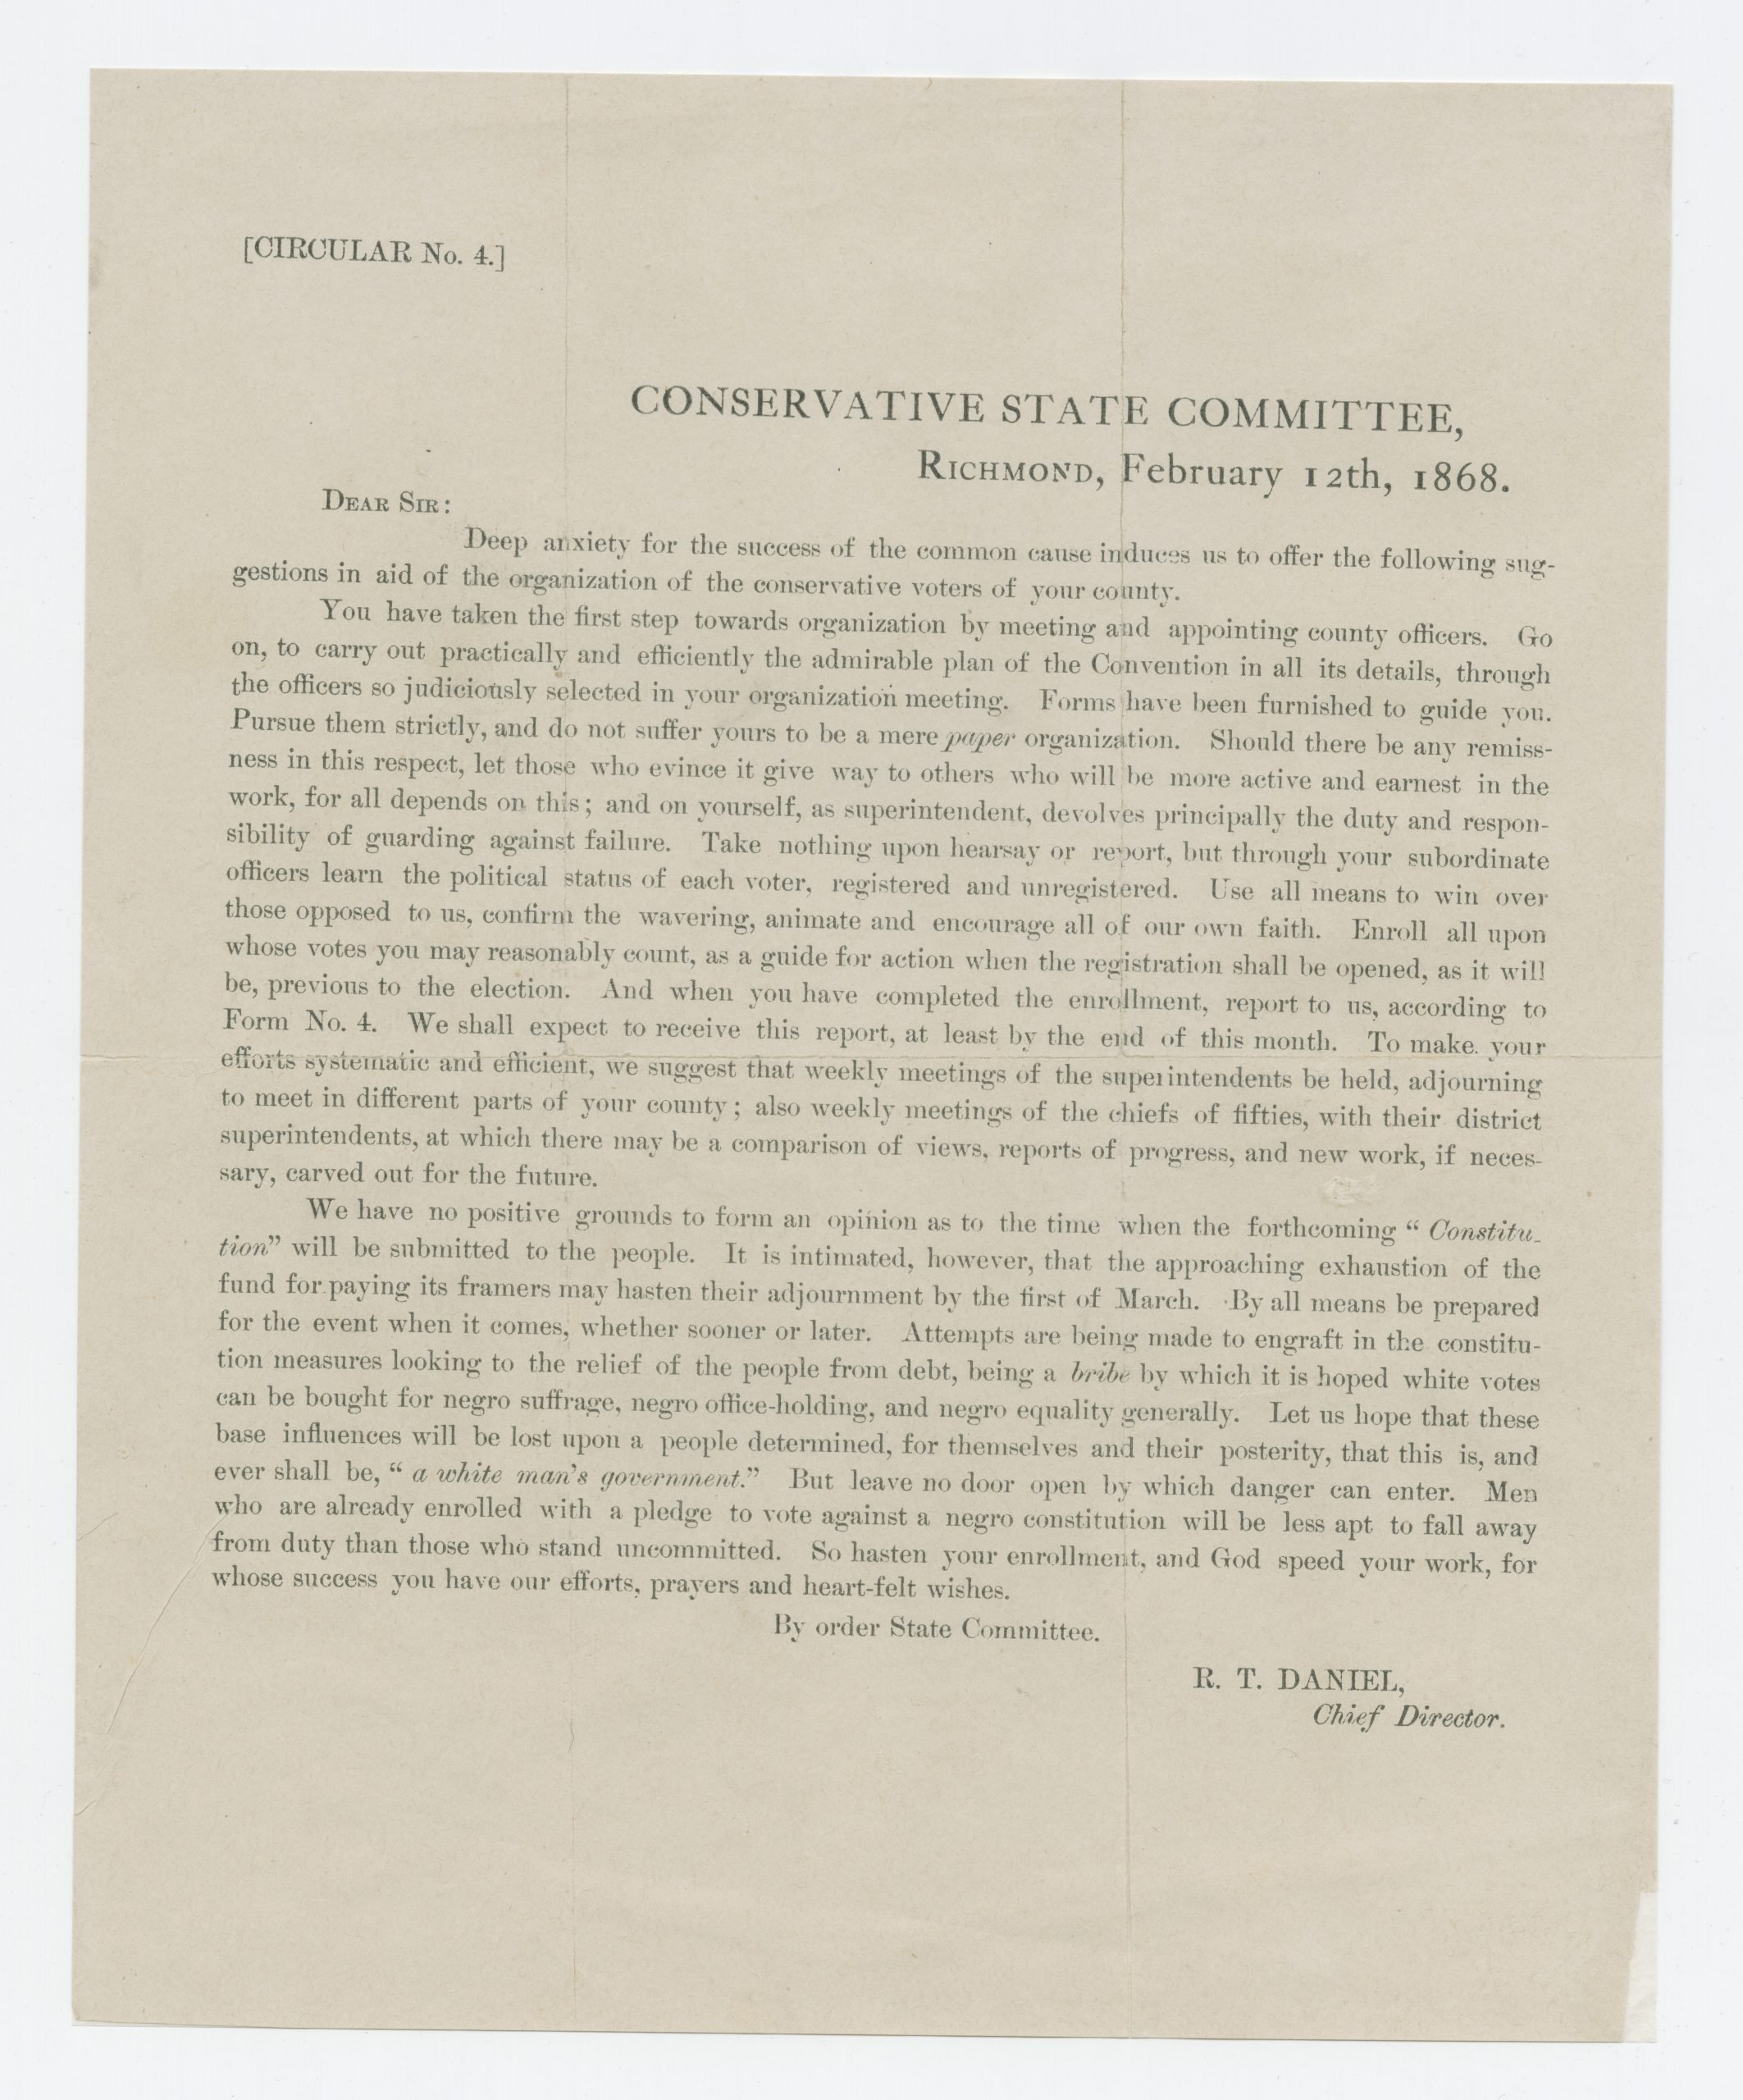 Conservative State Committee Circular No. 4